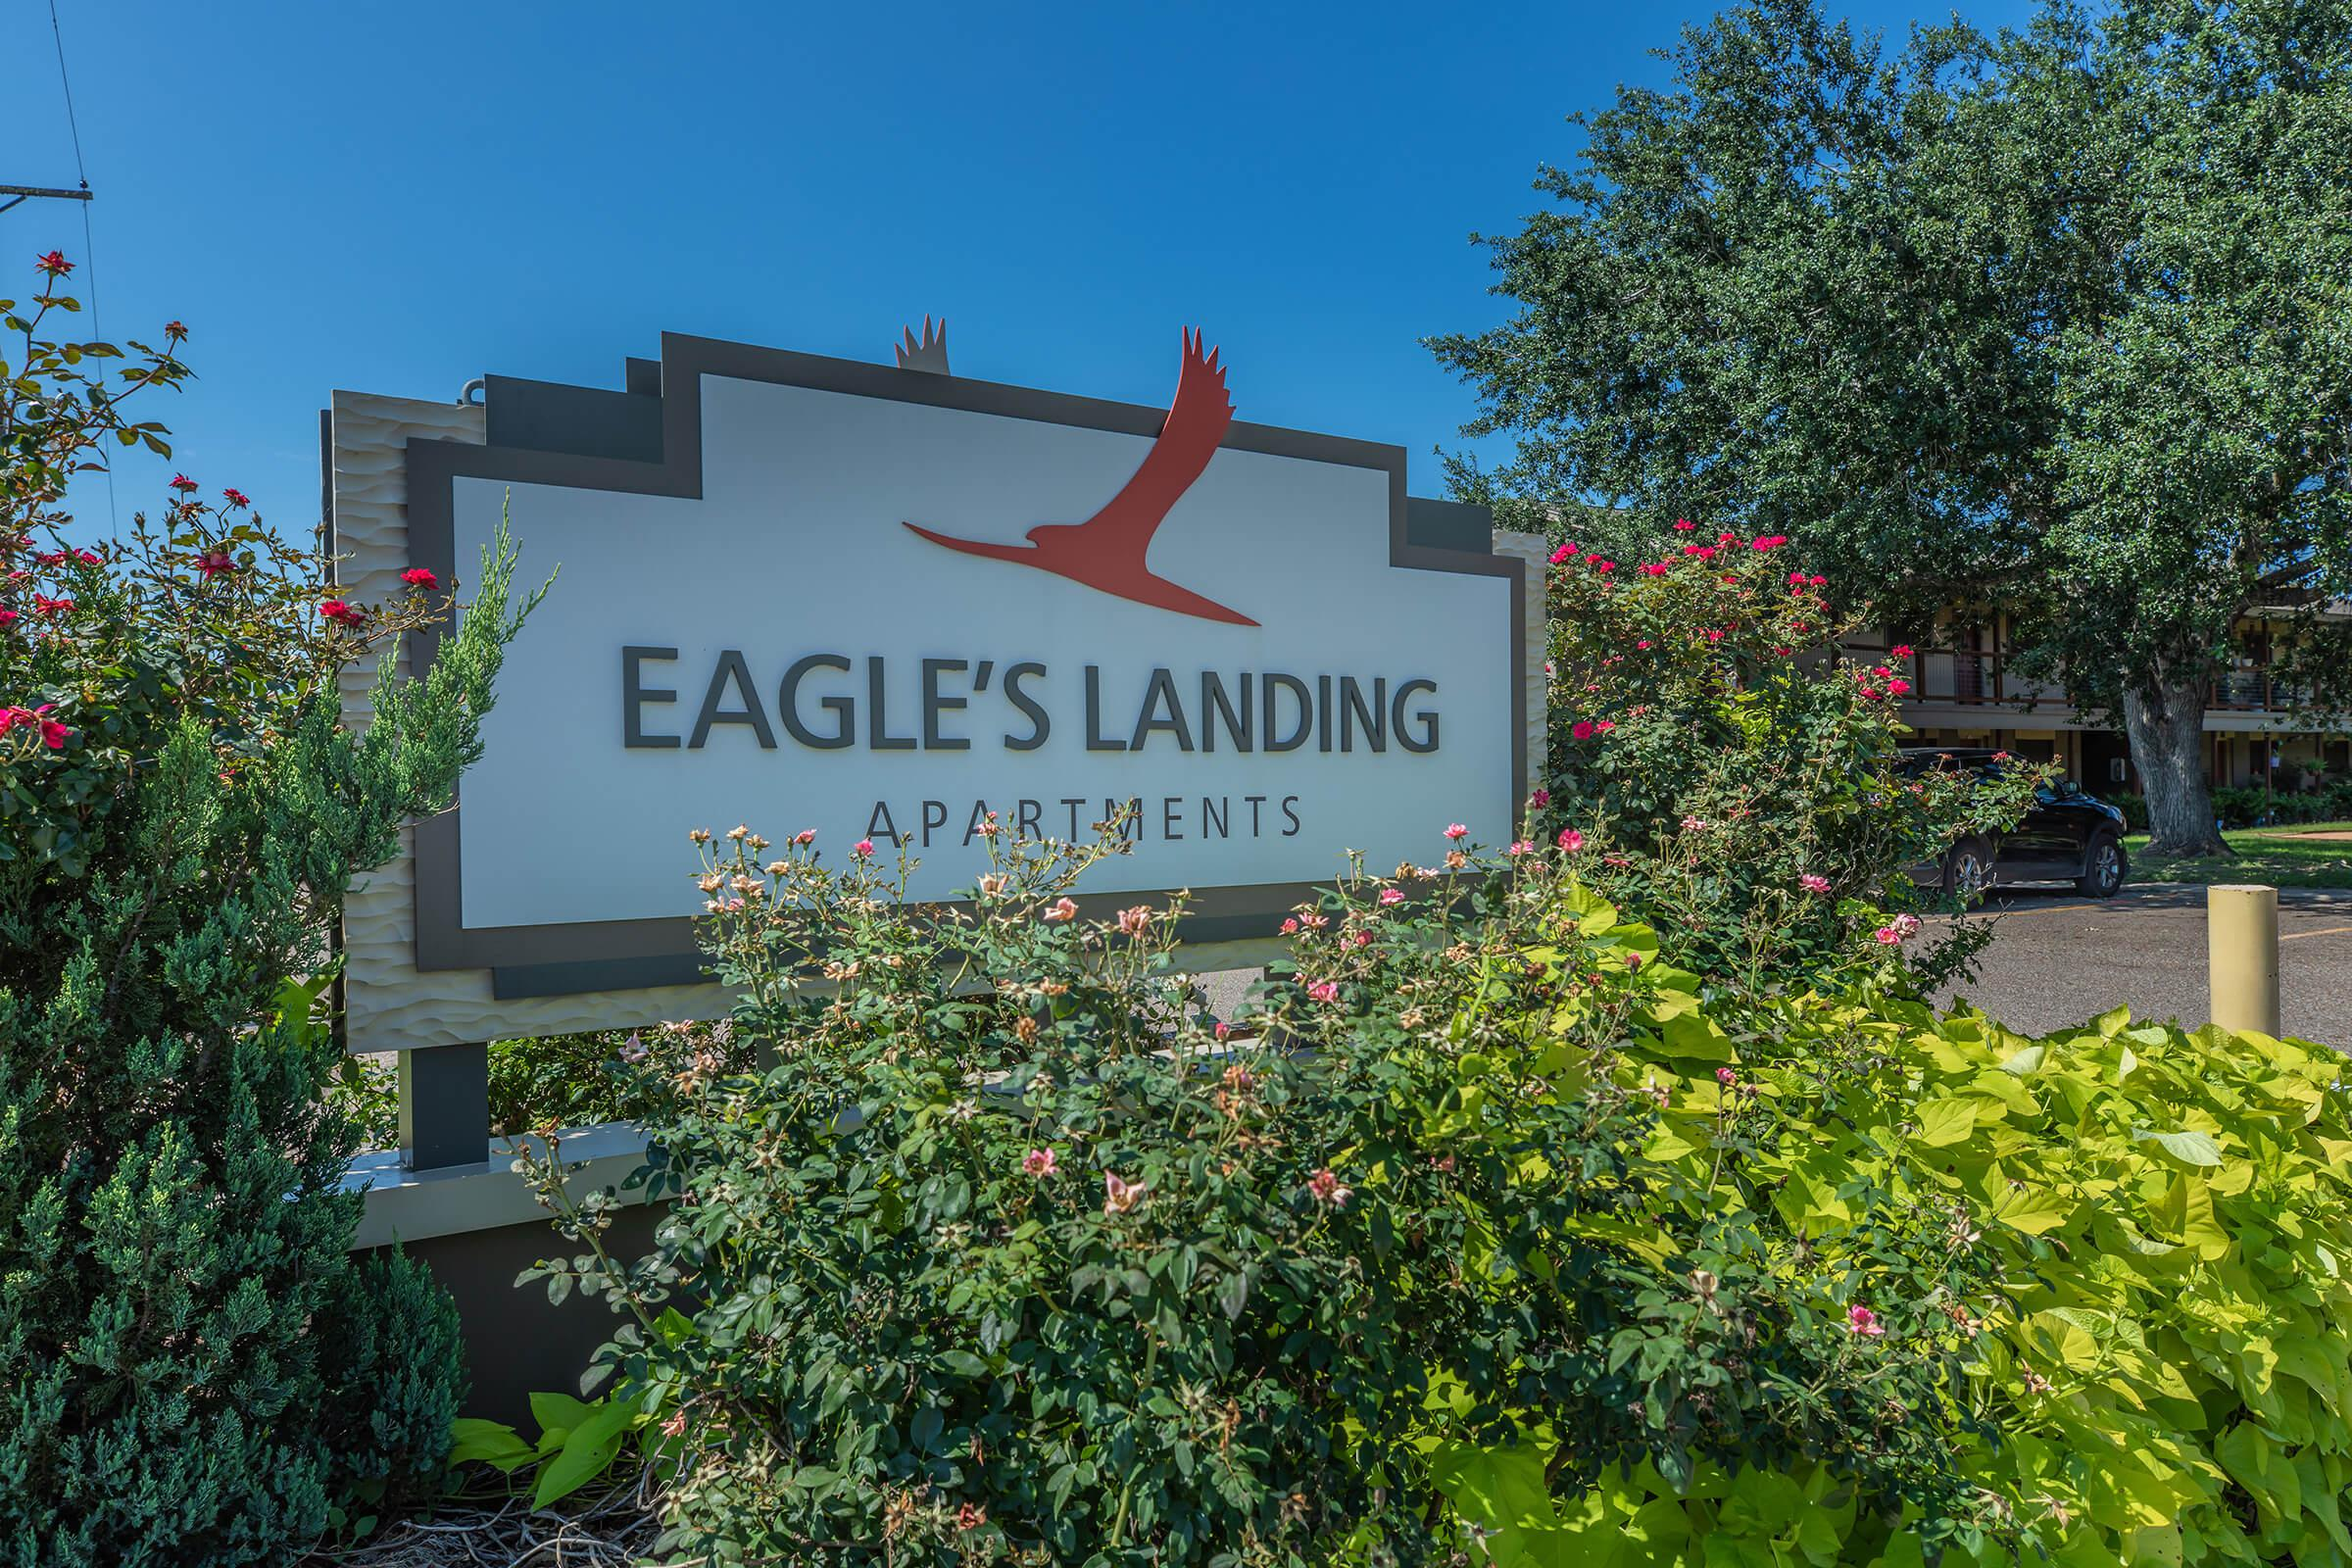 BEEVILLE LIVING AT EAGLE'S LANDING APARTMENTS